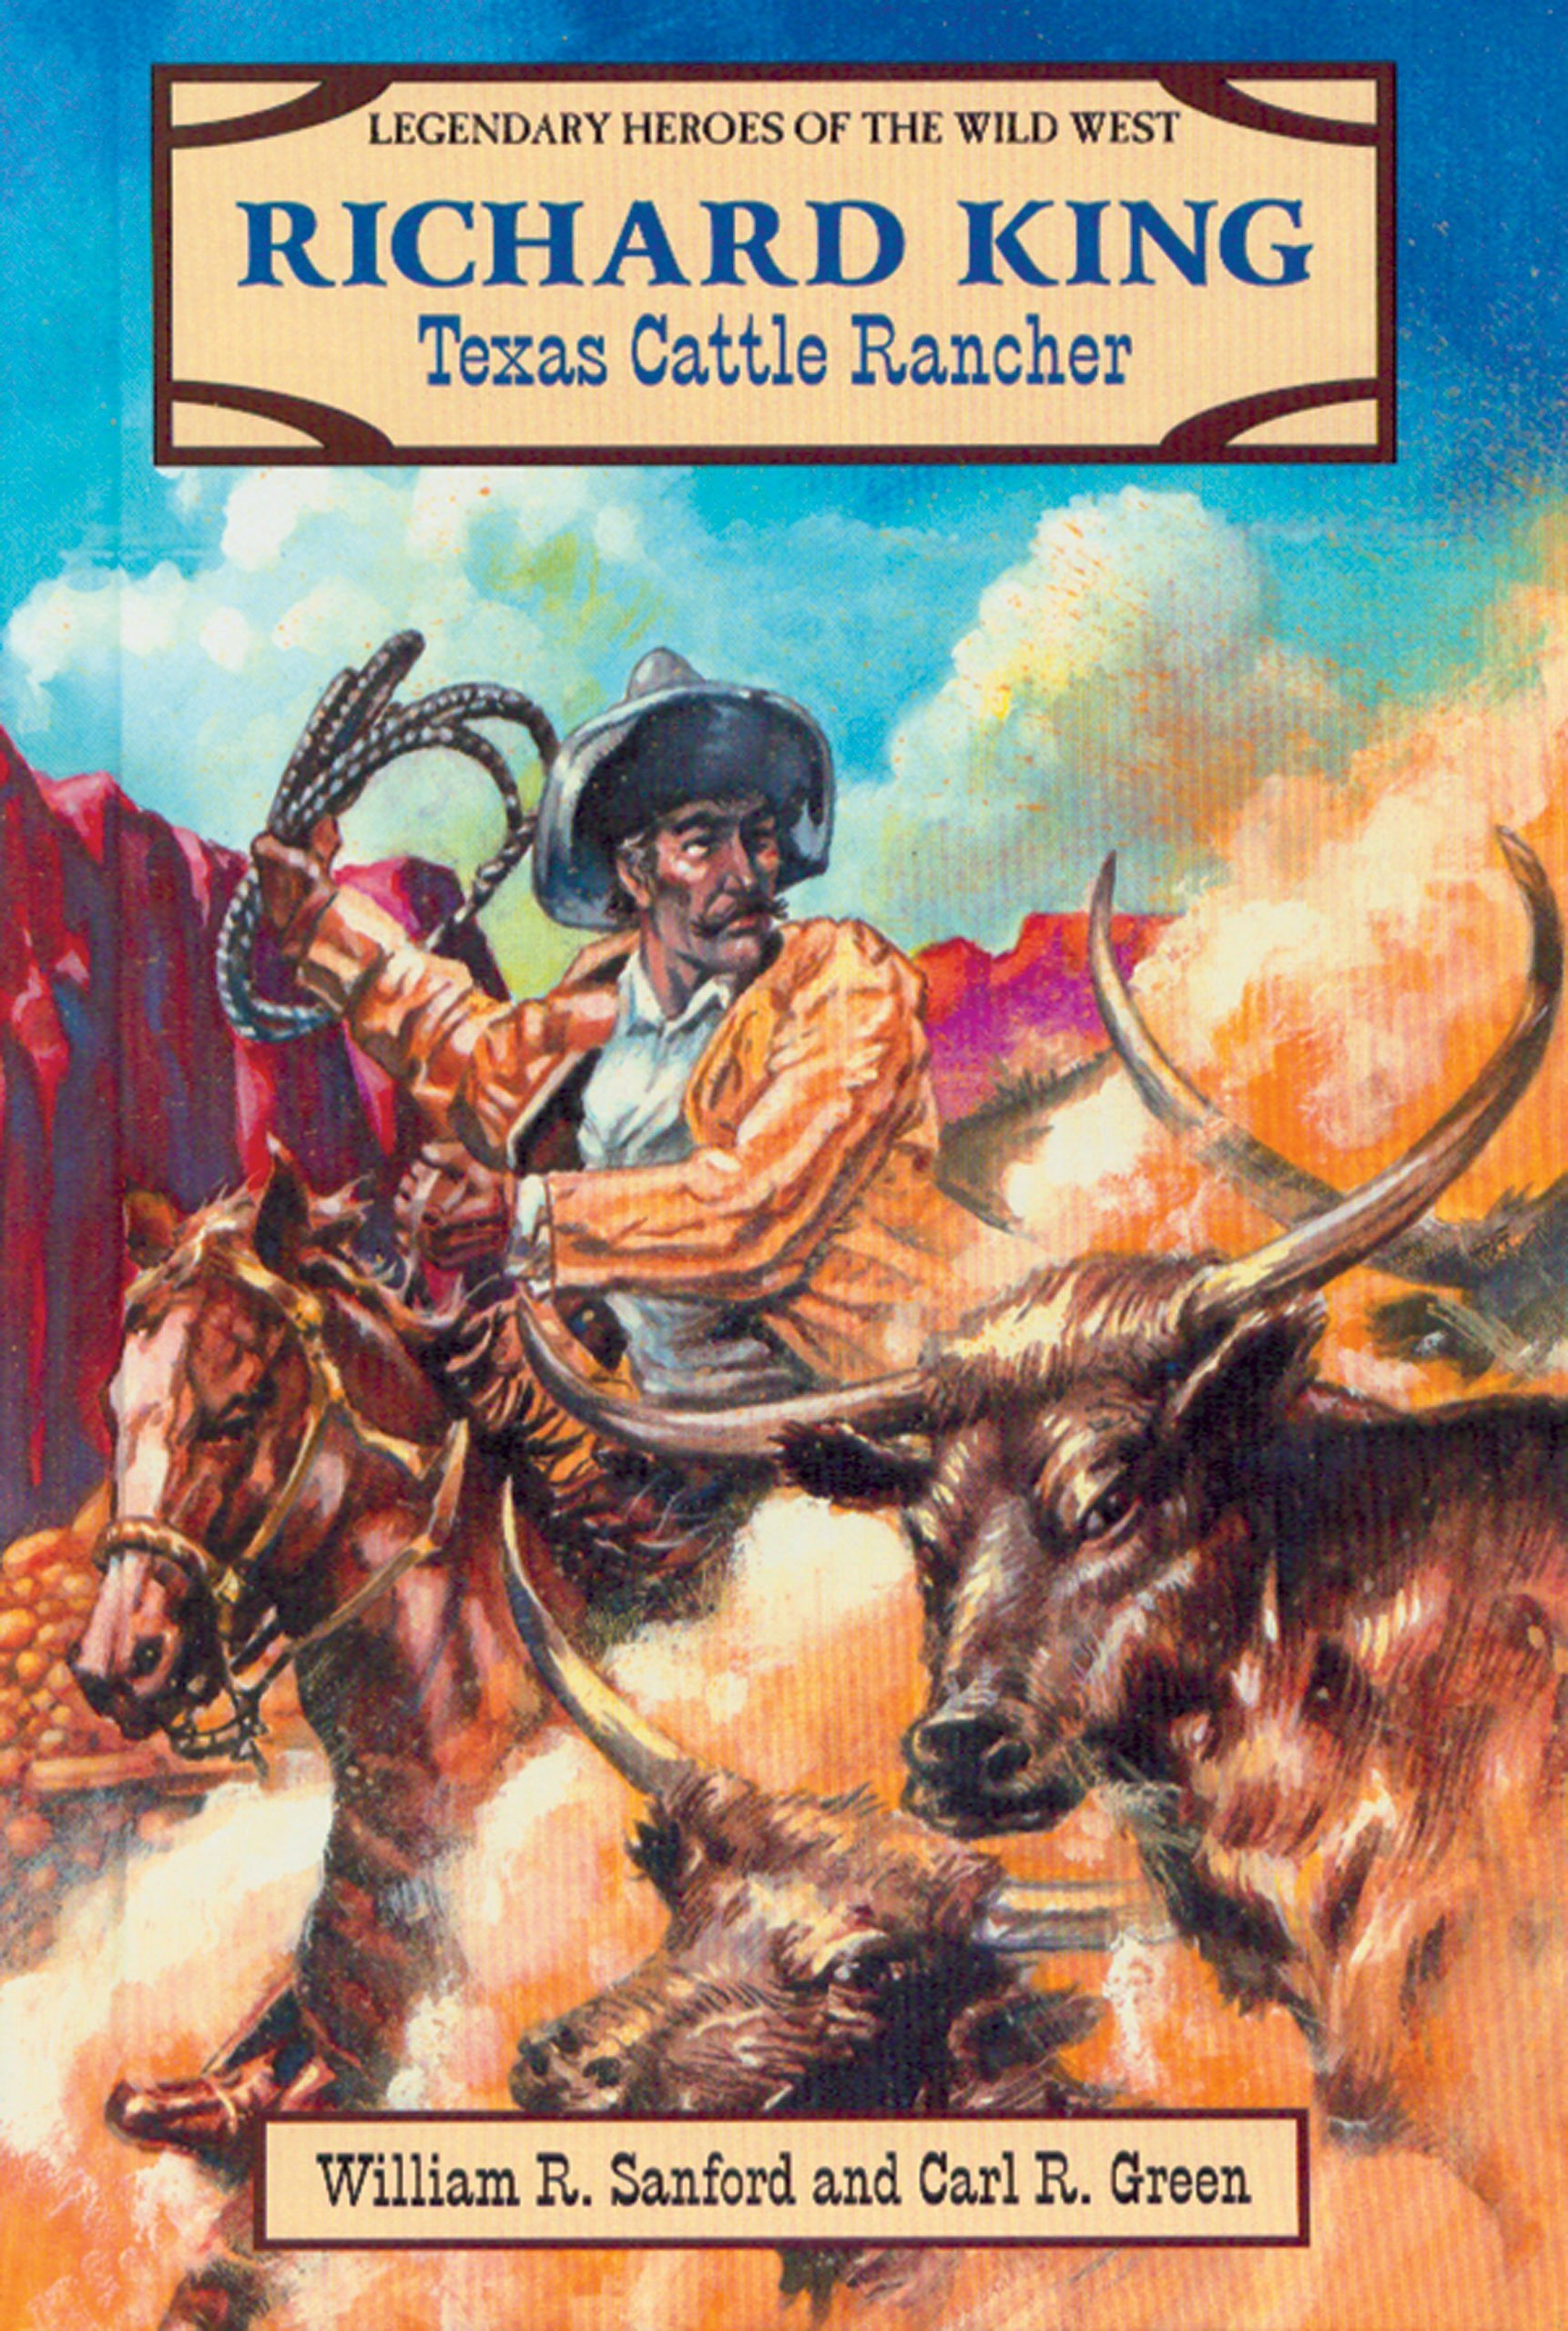 Richard King: Texas Cattle Rancher (Legendary Heroes of the Wild West)